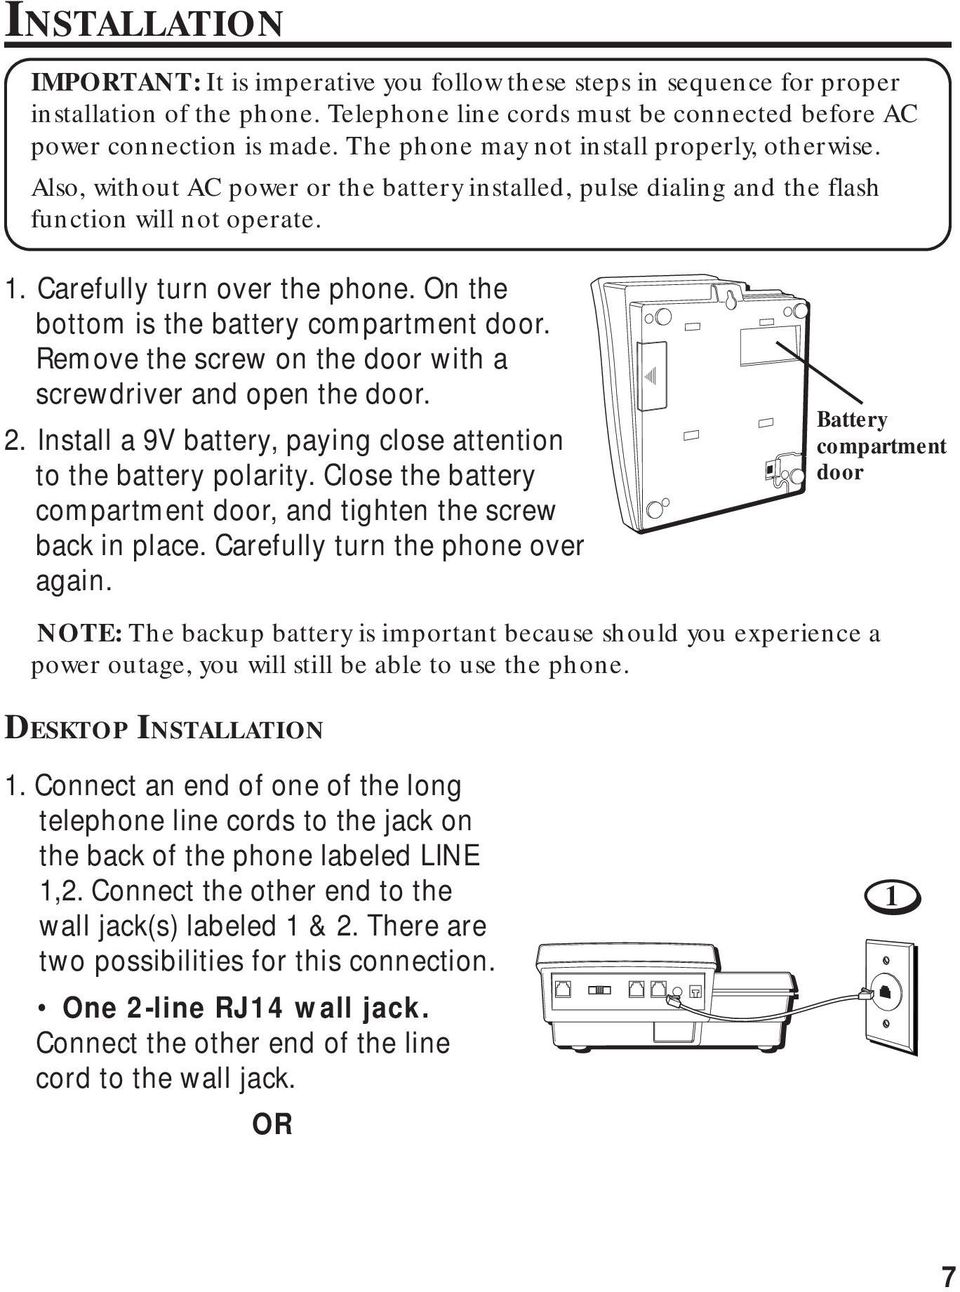 On the bottom is the battery compartment door. Remove the screw on the door with a screwdriver and open the door. 2. Install a 9V battery, paying close attention to the battery polarity.